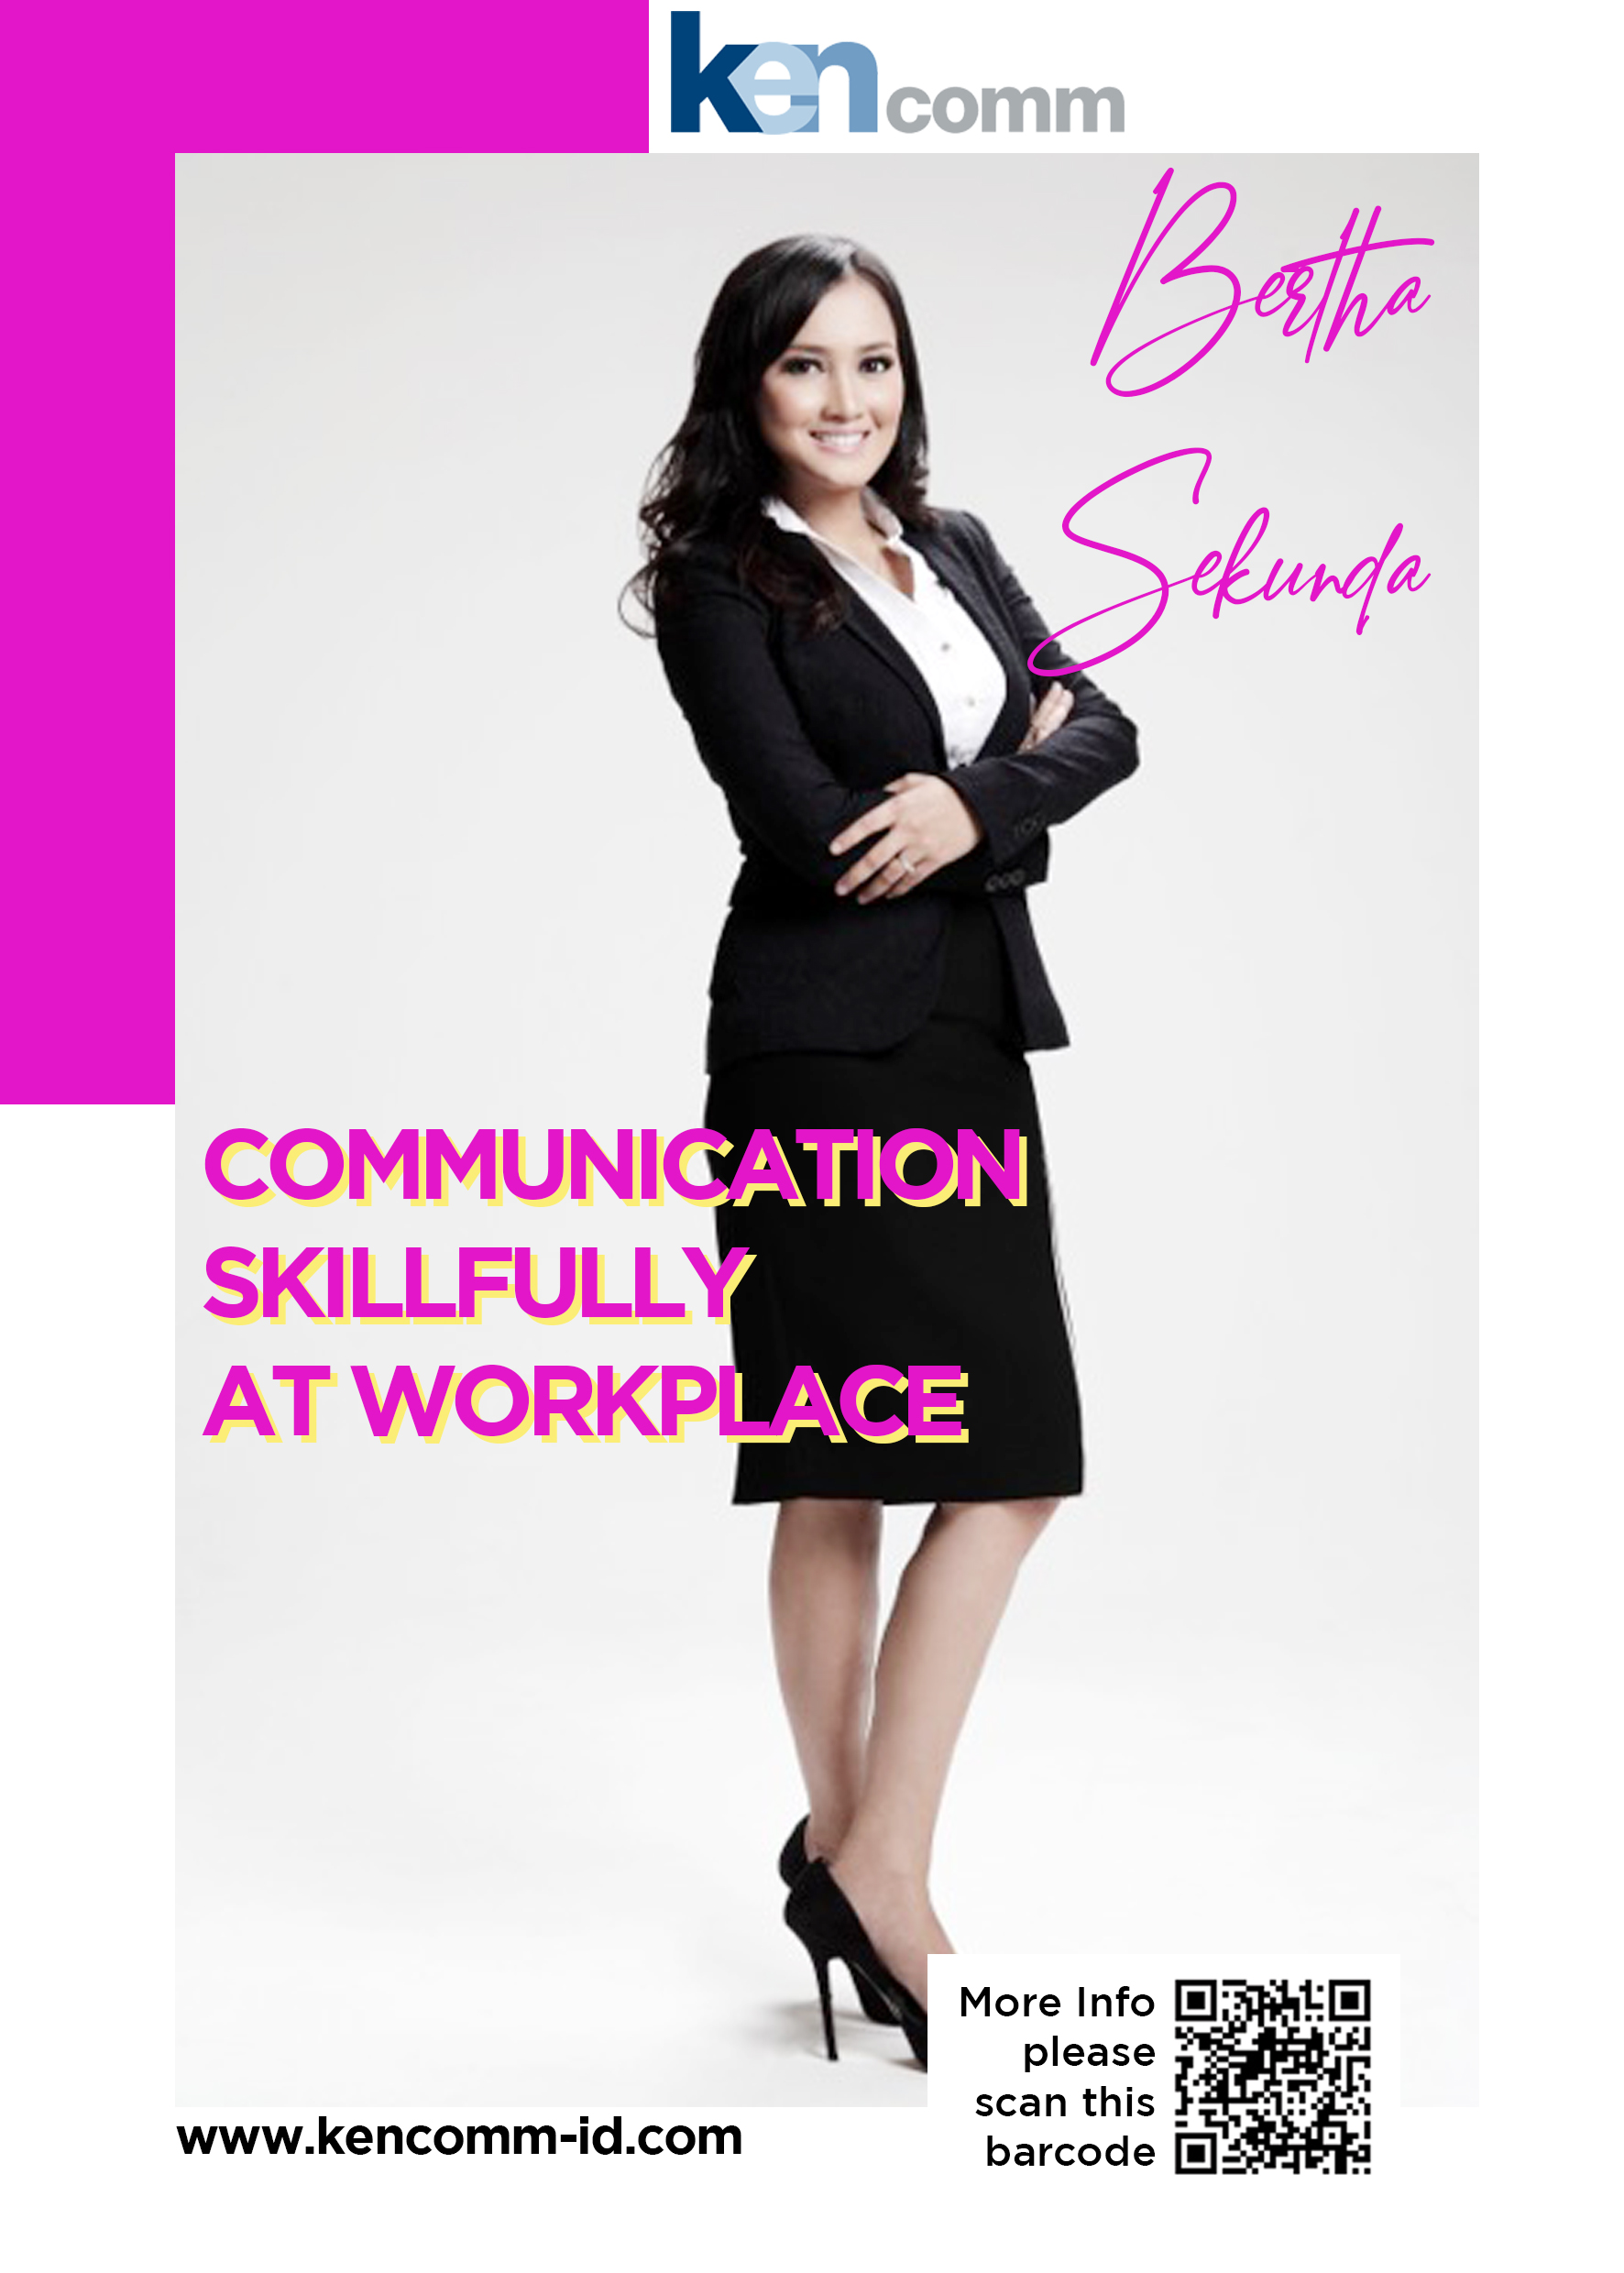 communication skillfully at workplace-Bertha